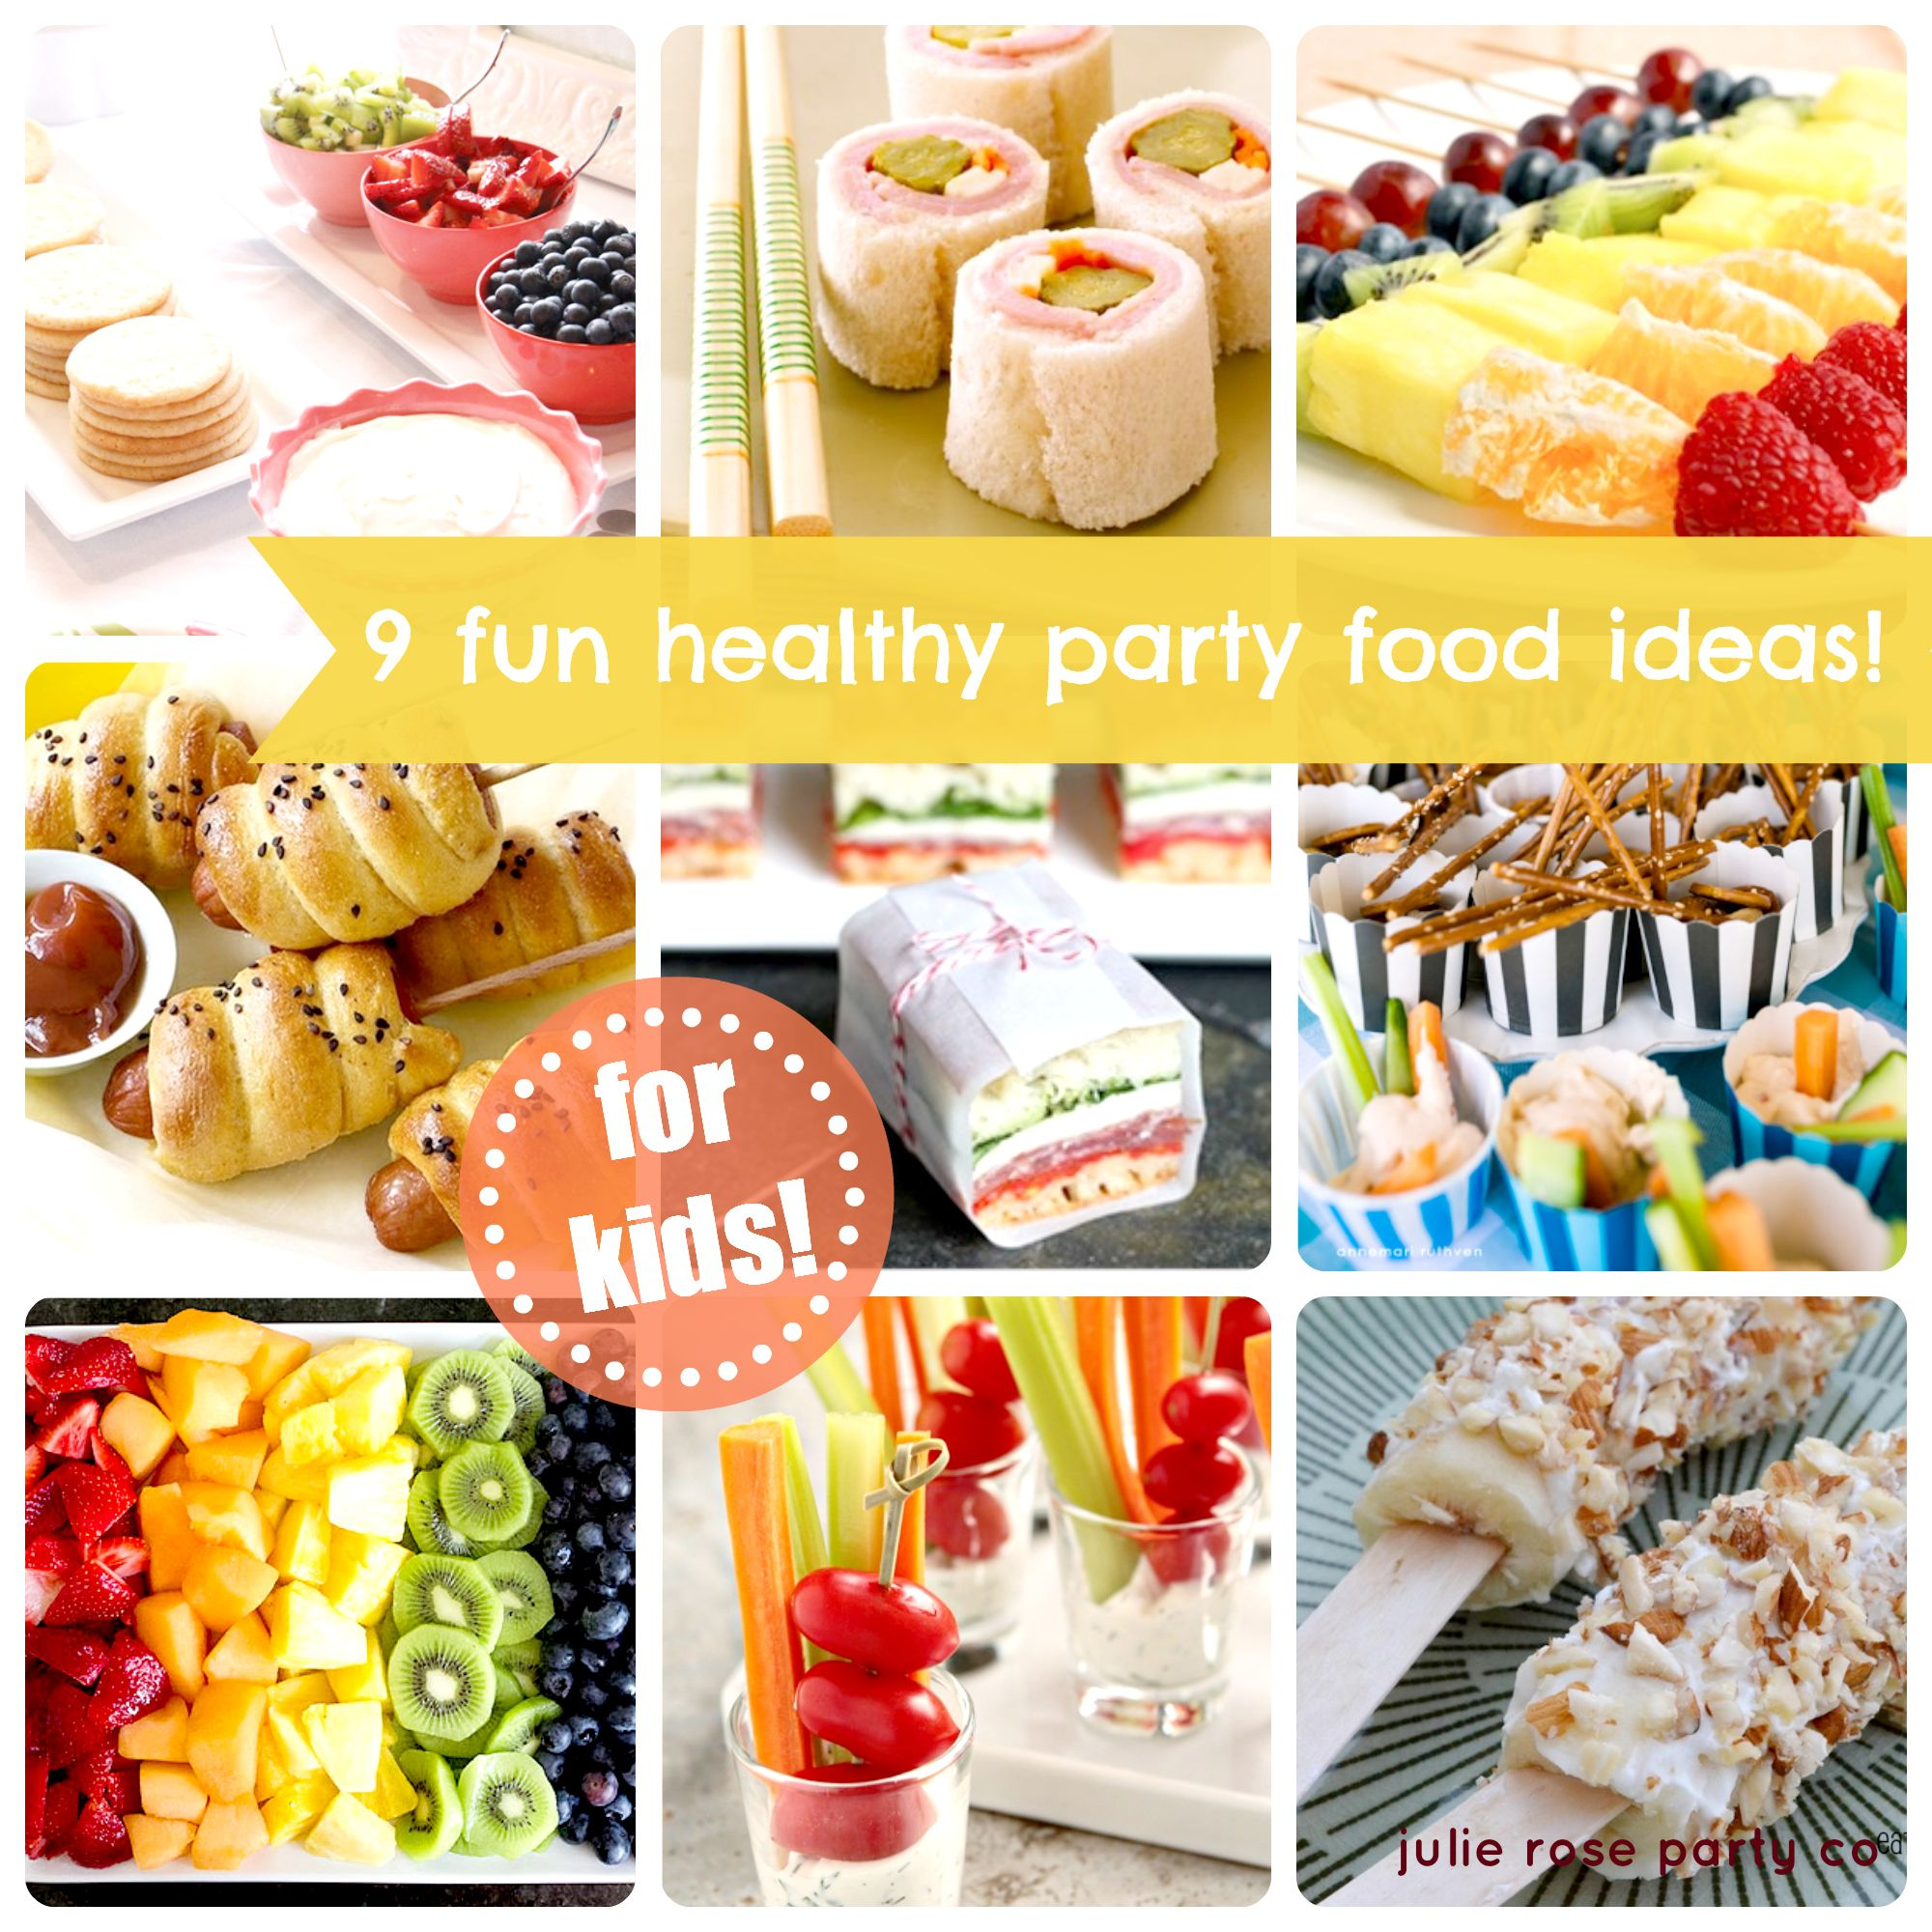 Party Essen Ideen Contact Support | Healthy Party Food, Childrens Party Food, Food